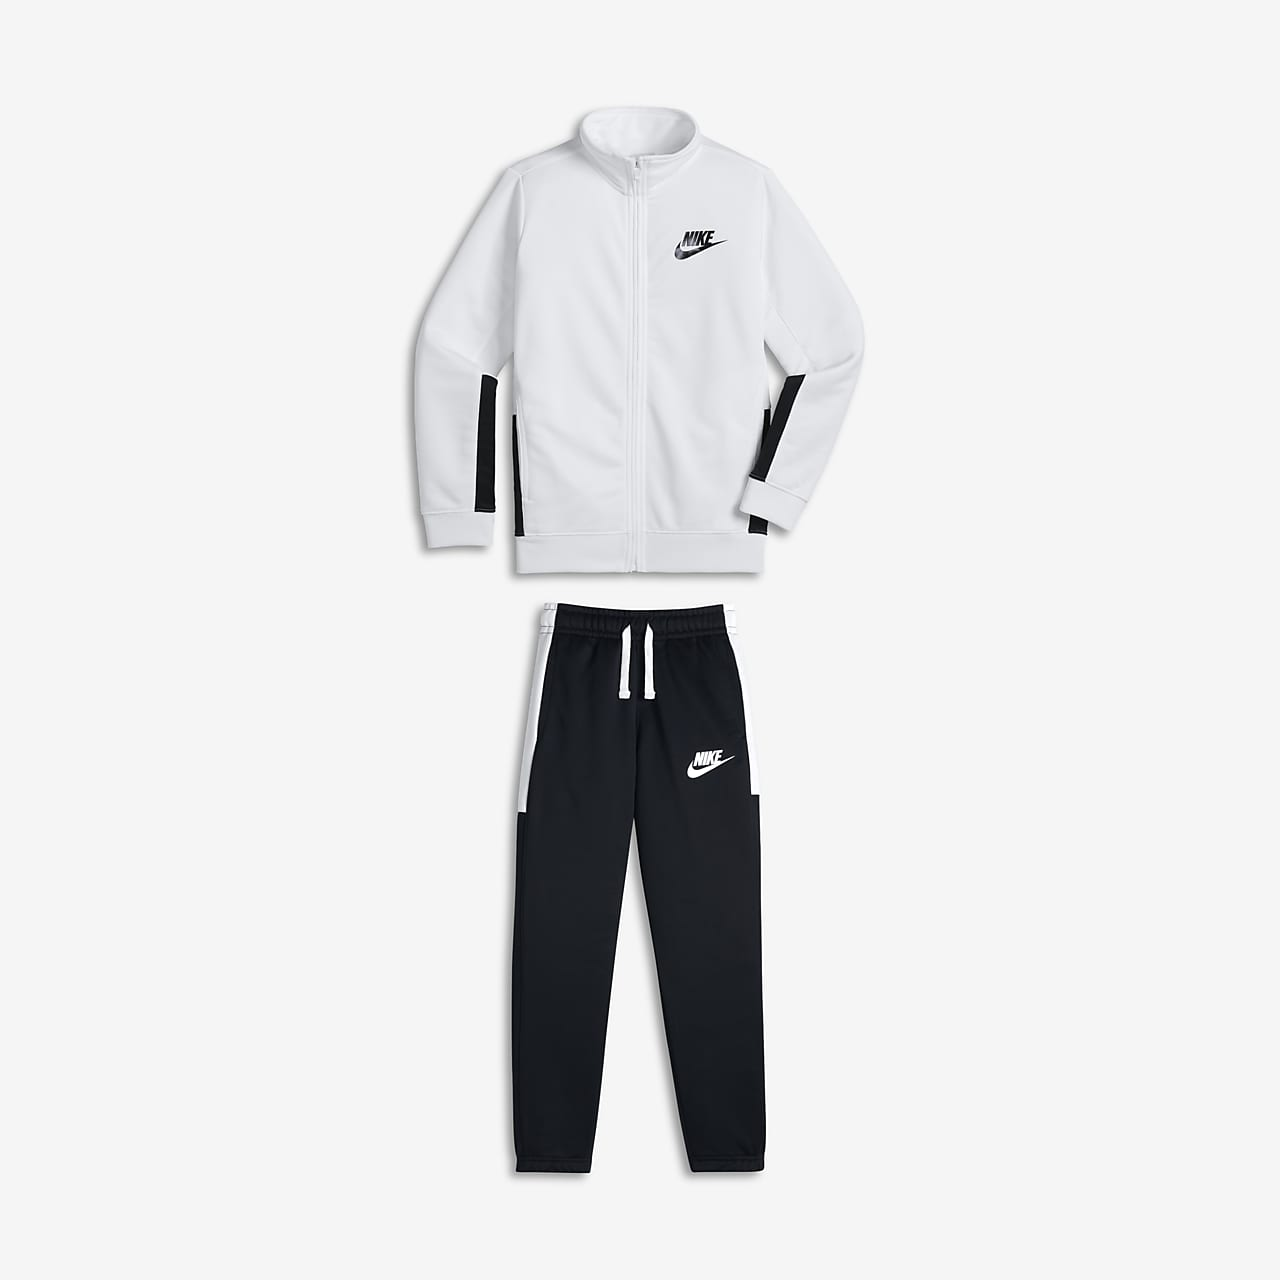 Nike Sportswear Two-Piece Older Kids' (Boys') Track Suit